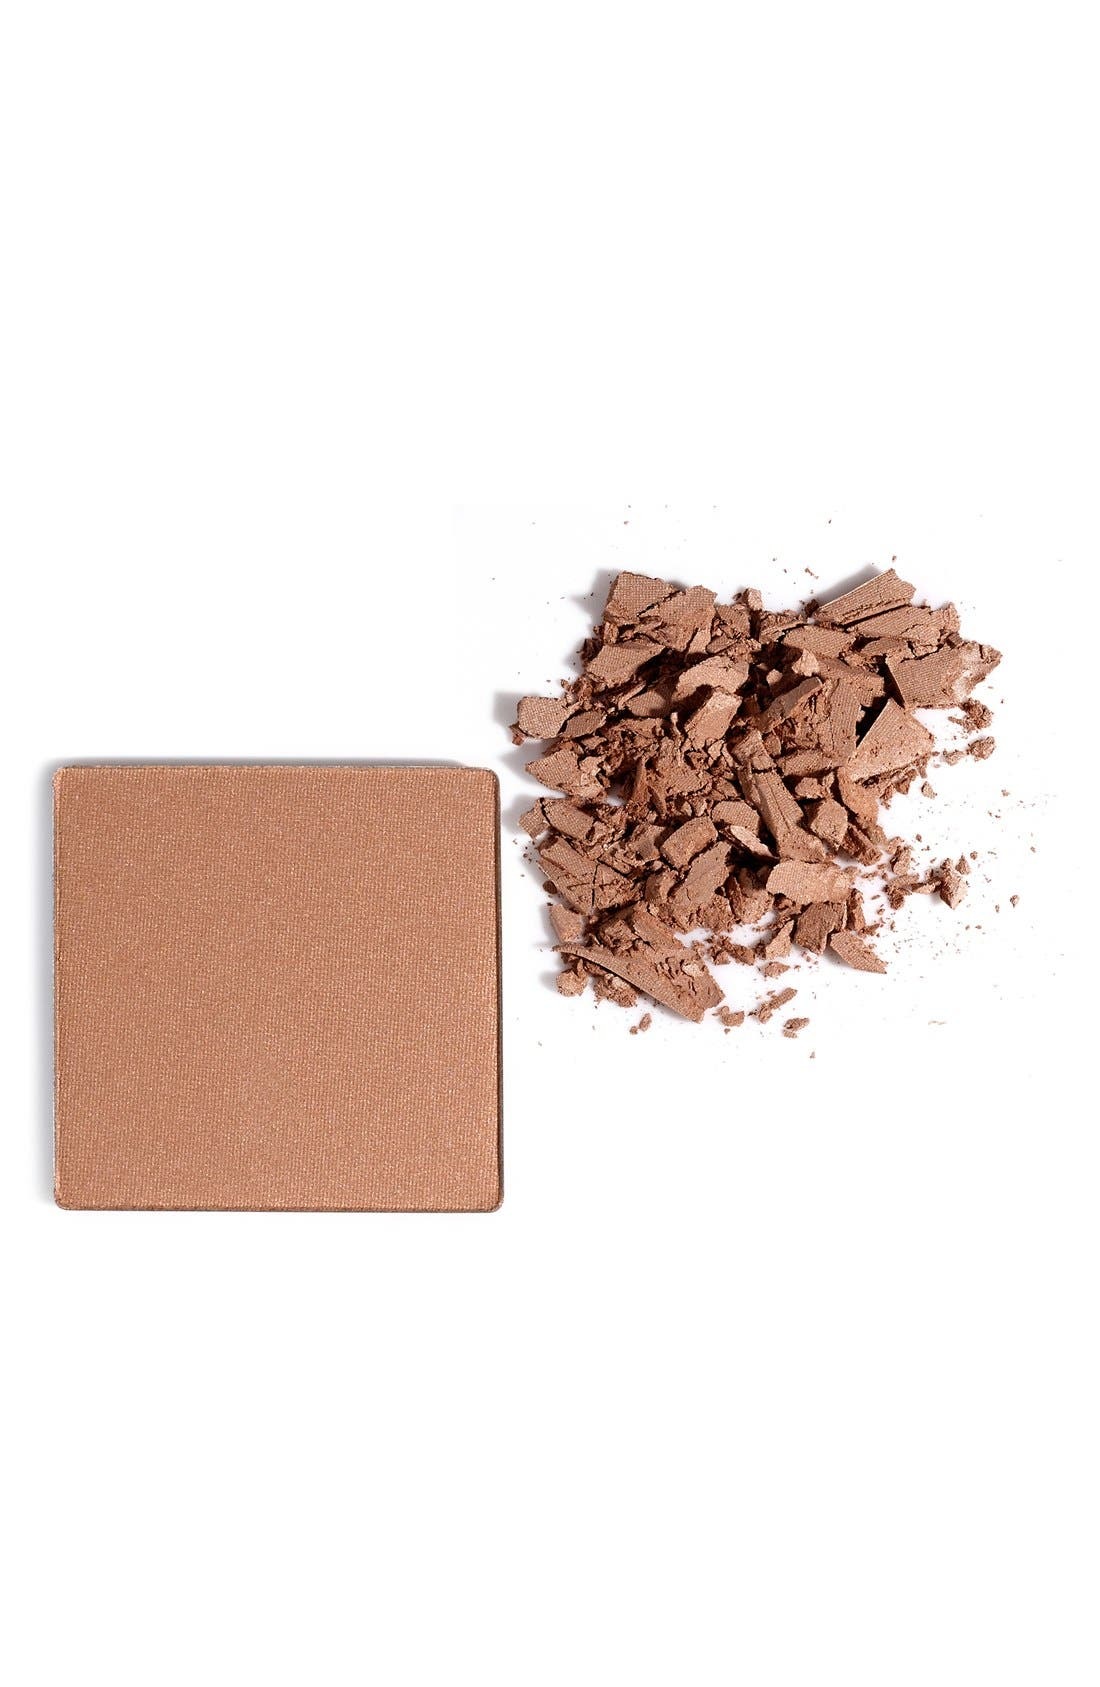 Sunkissed Bronzer Refill,                             Alternate thumbnail 3, color,                             200